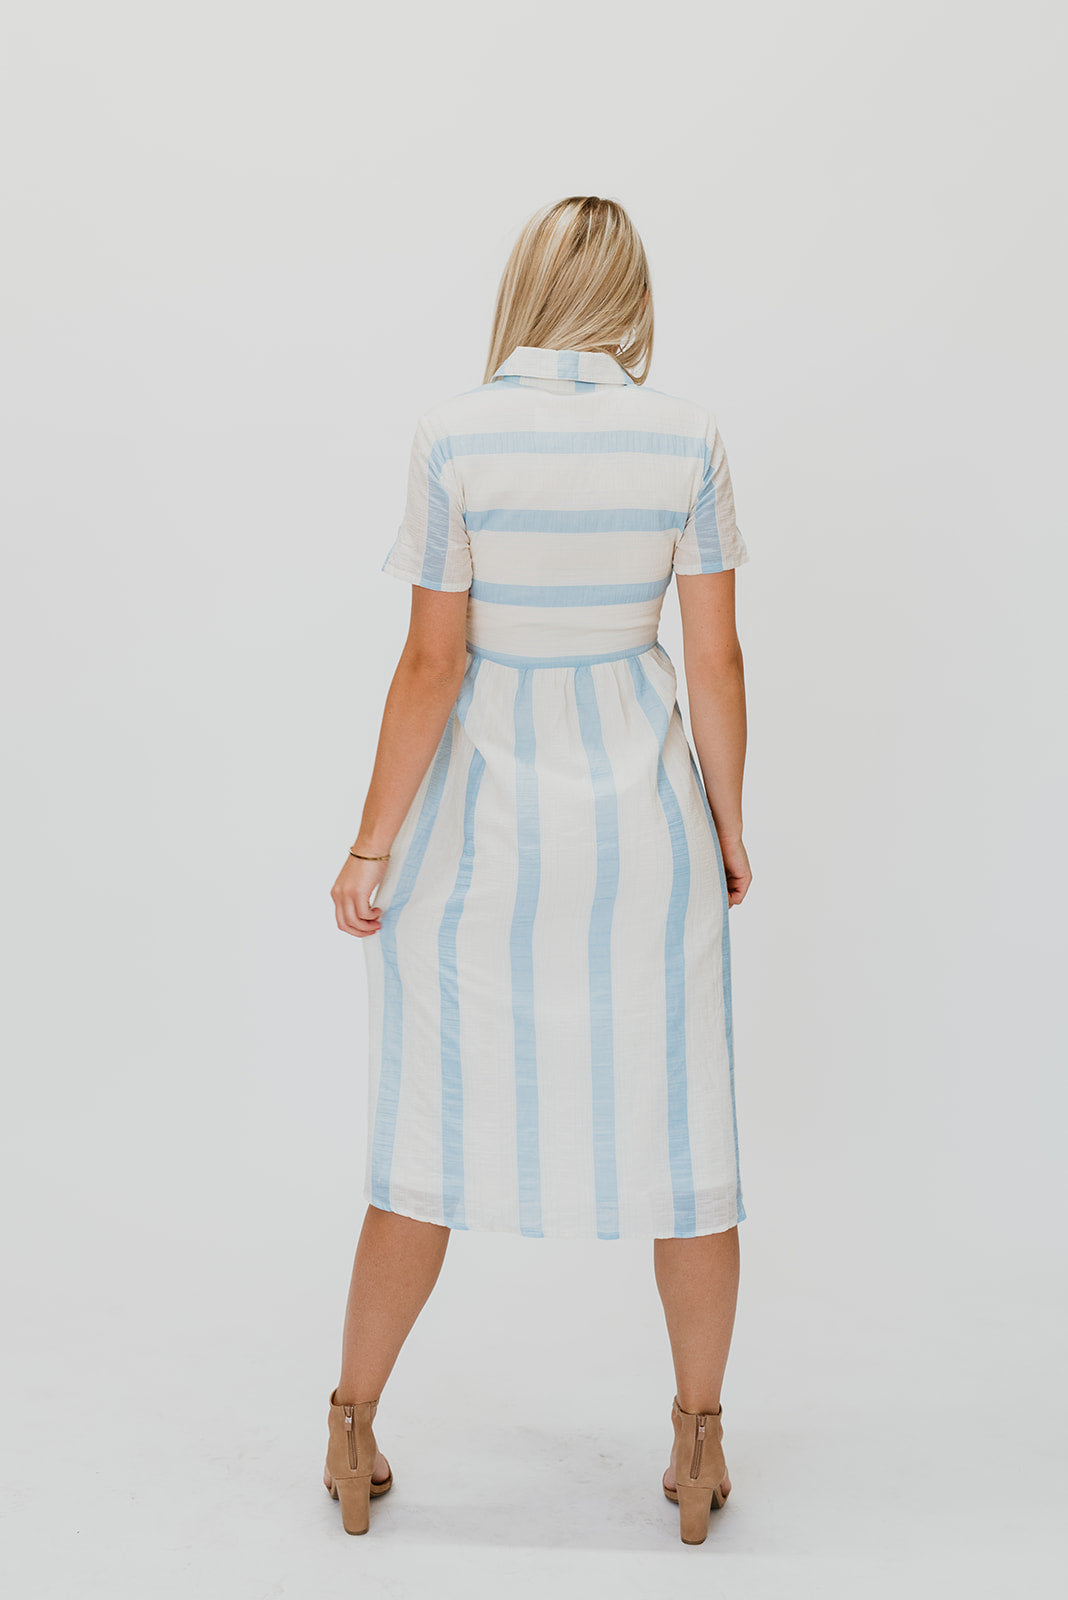 THE KAILEE TEXTURED STRIPE DRESS IN SKY BLUE